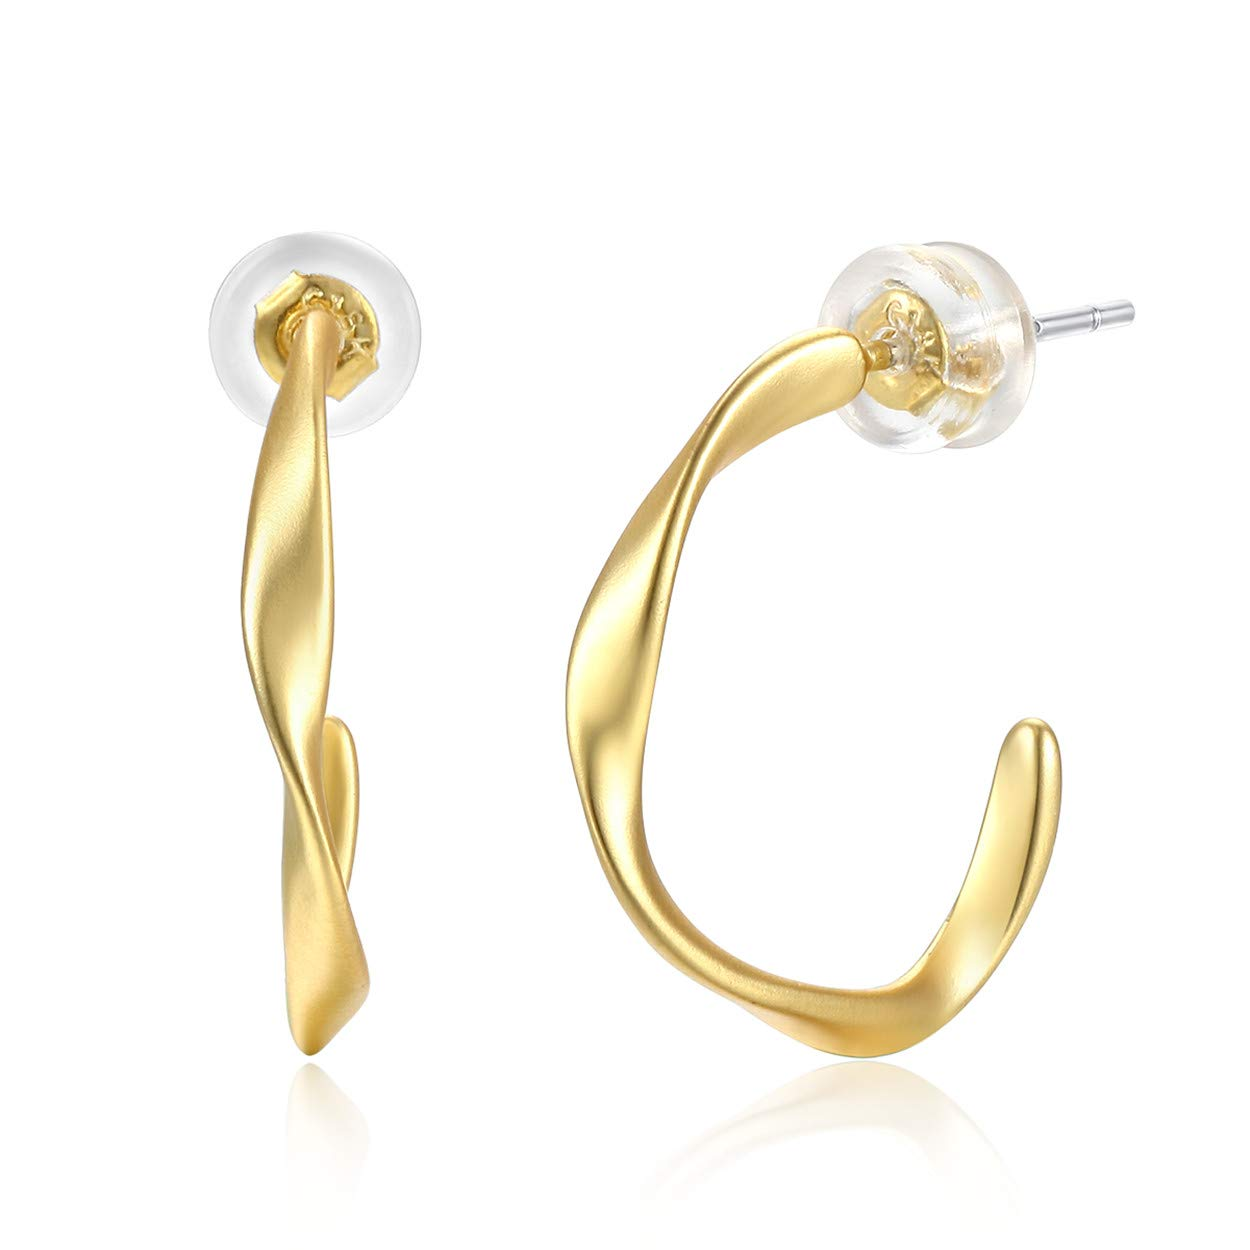 ad80a673232a1 Amazon.com: Matte Gold Hoop Earrings, 925 Sterling Silver Ear Post ...